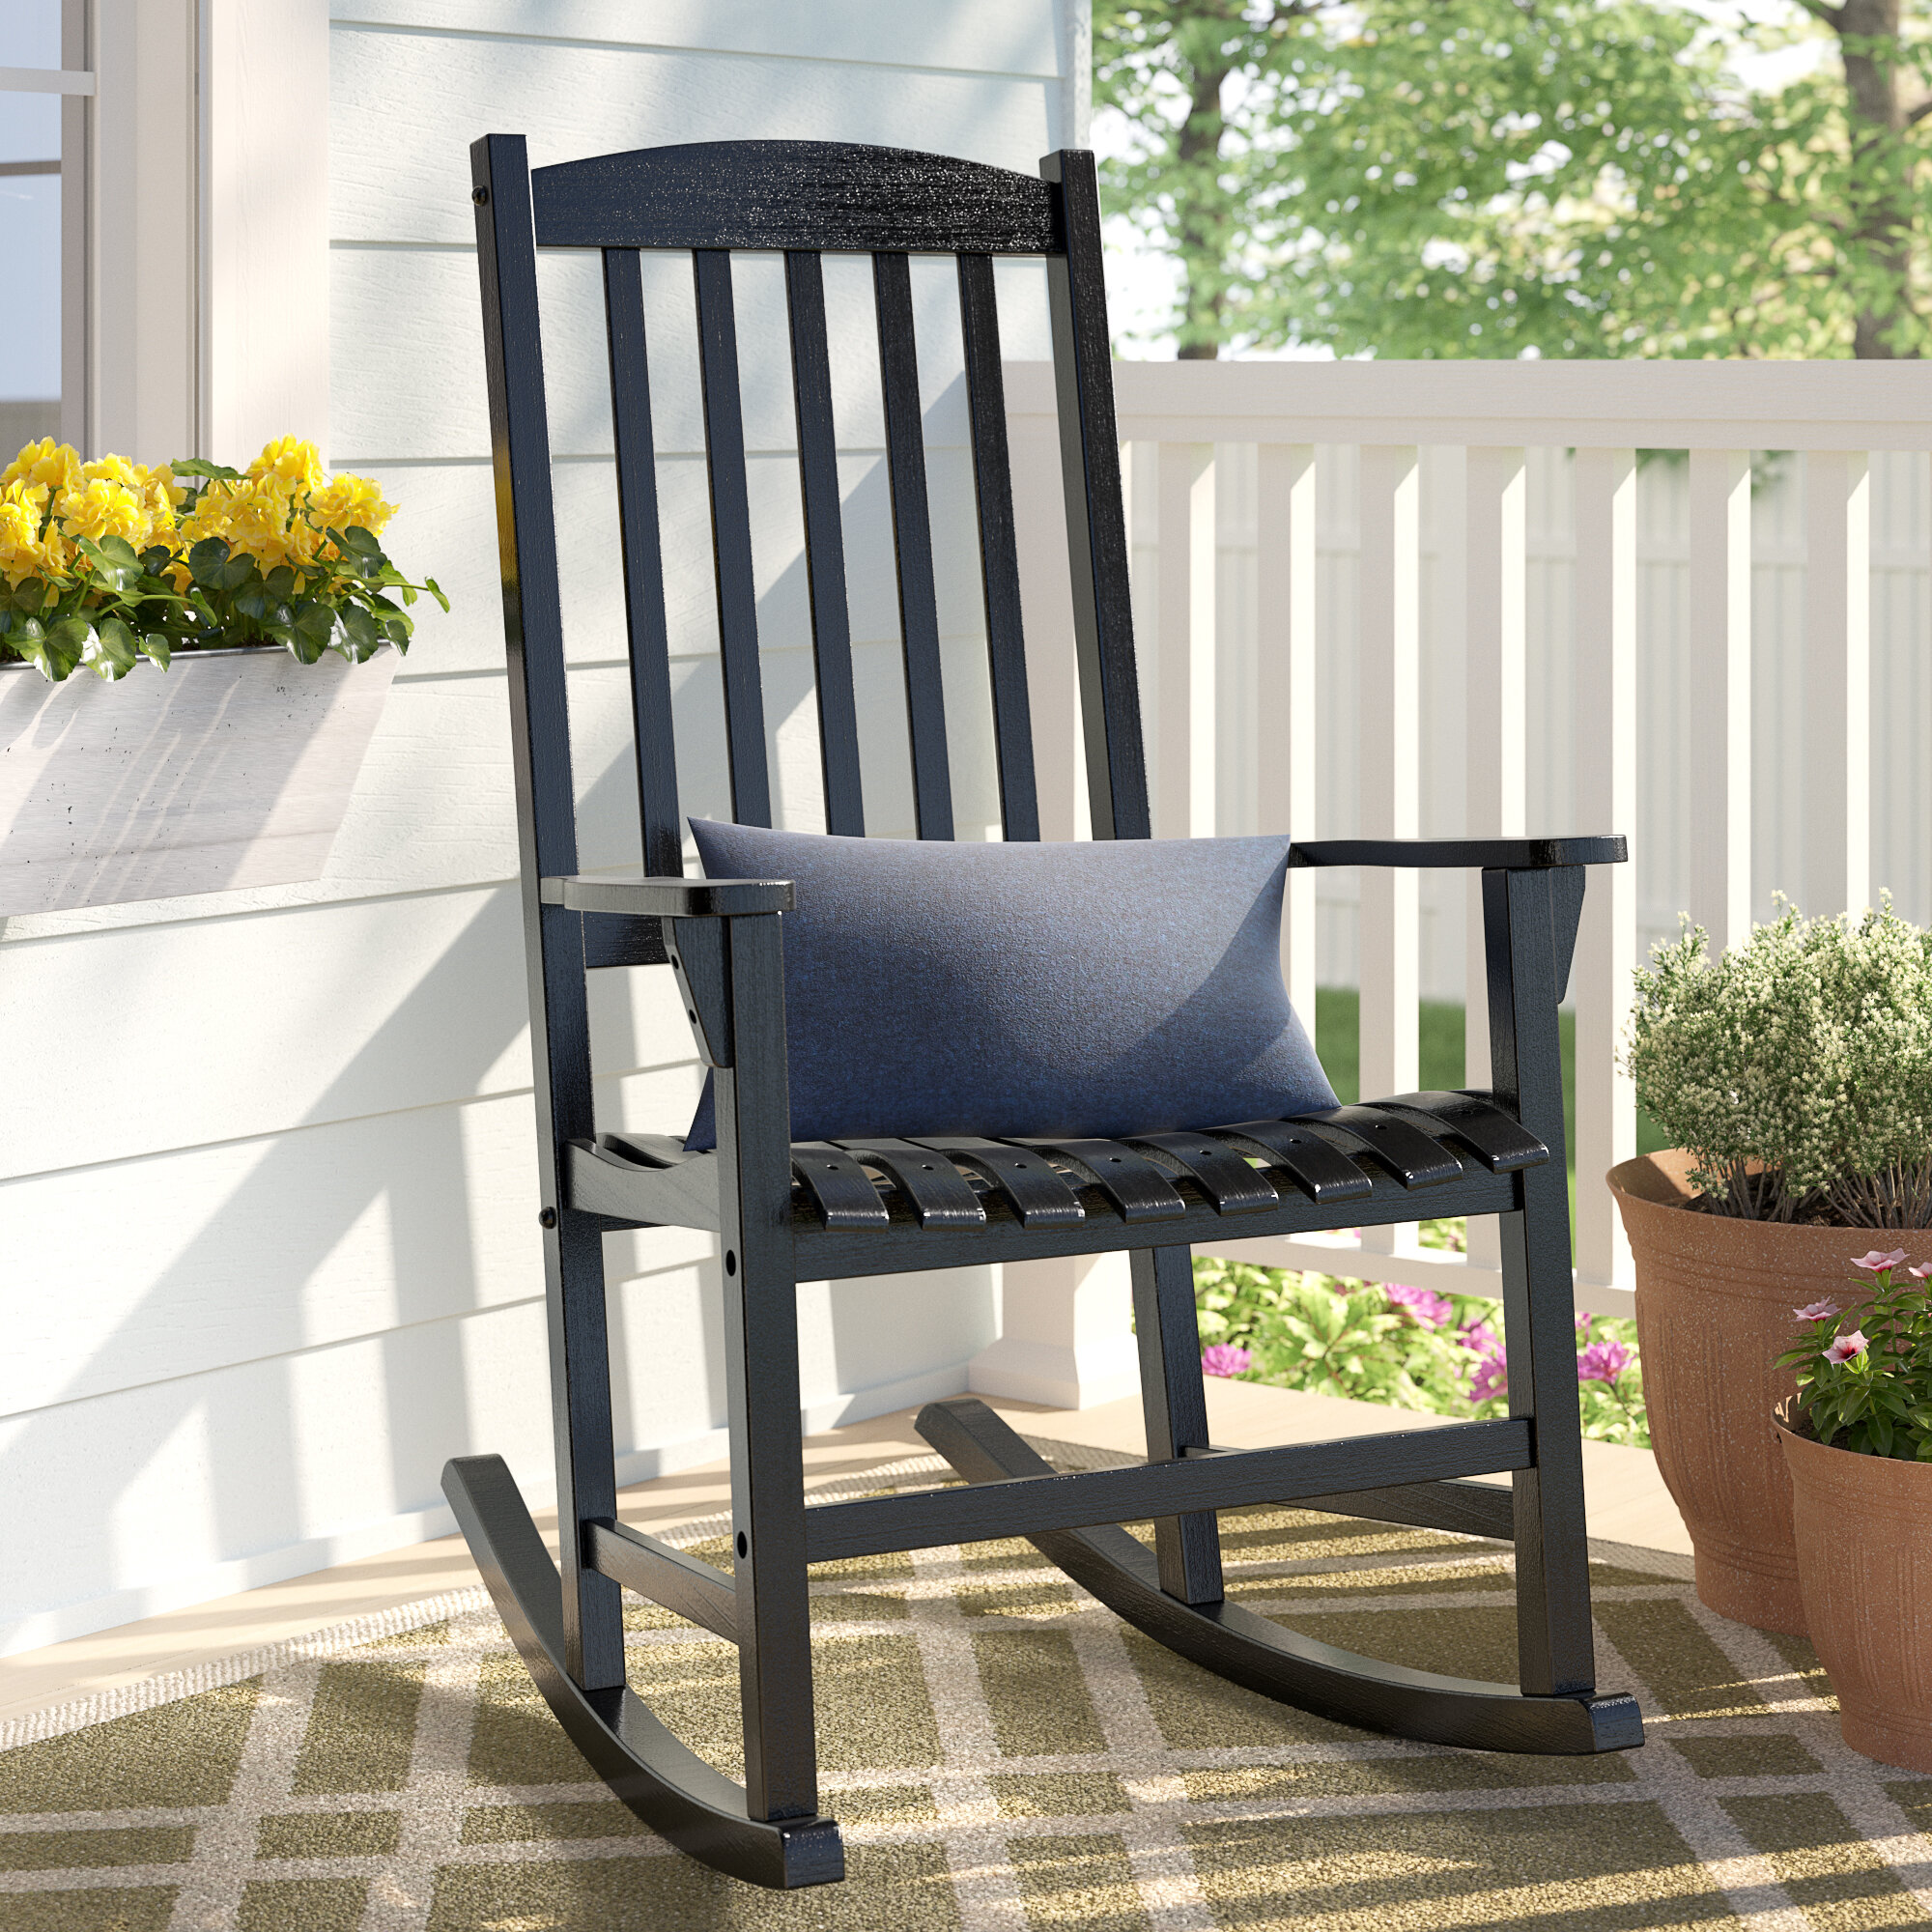 Sol 72 Outdoor Abasi Rocking Chair